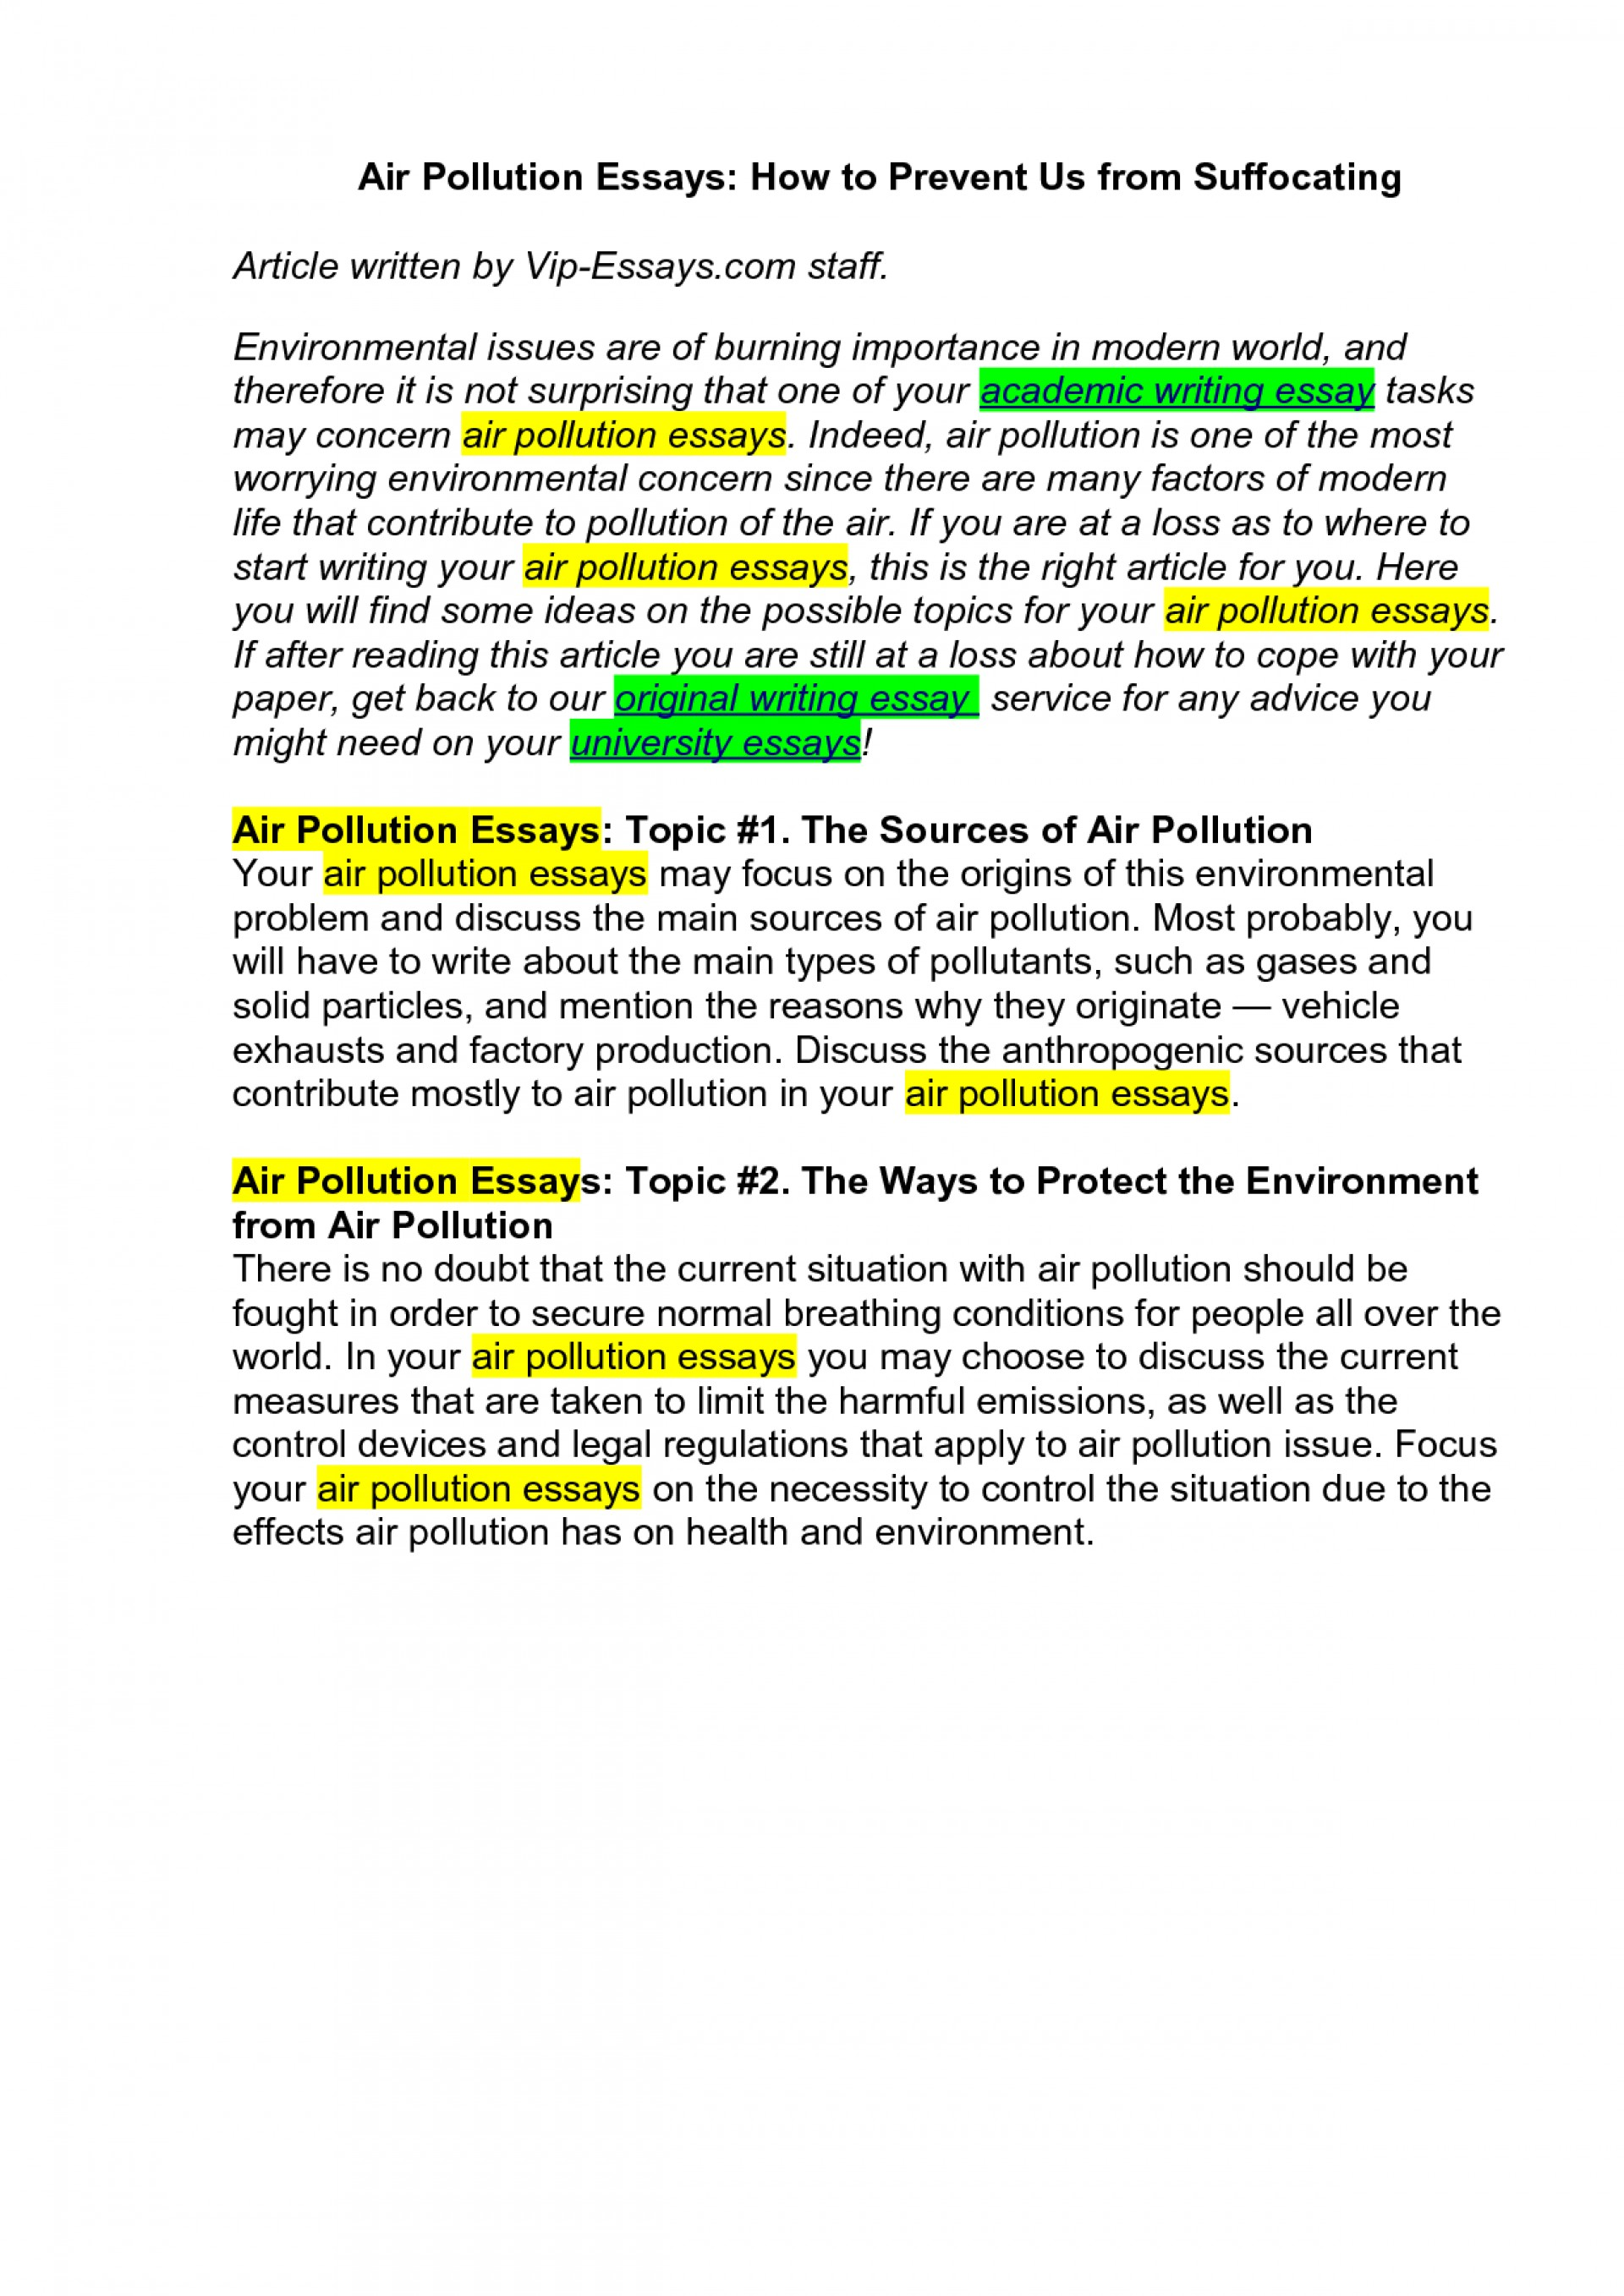 005 1558972385 How To Stop Air Pollution Essay Sensational Outline Thesis Statement 1920